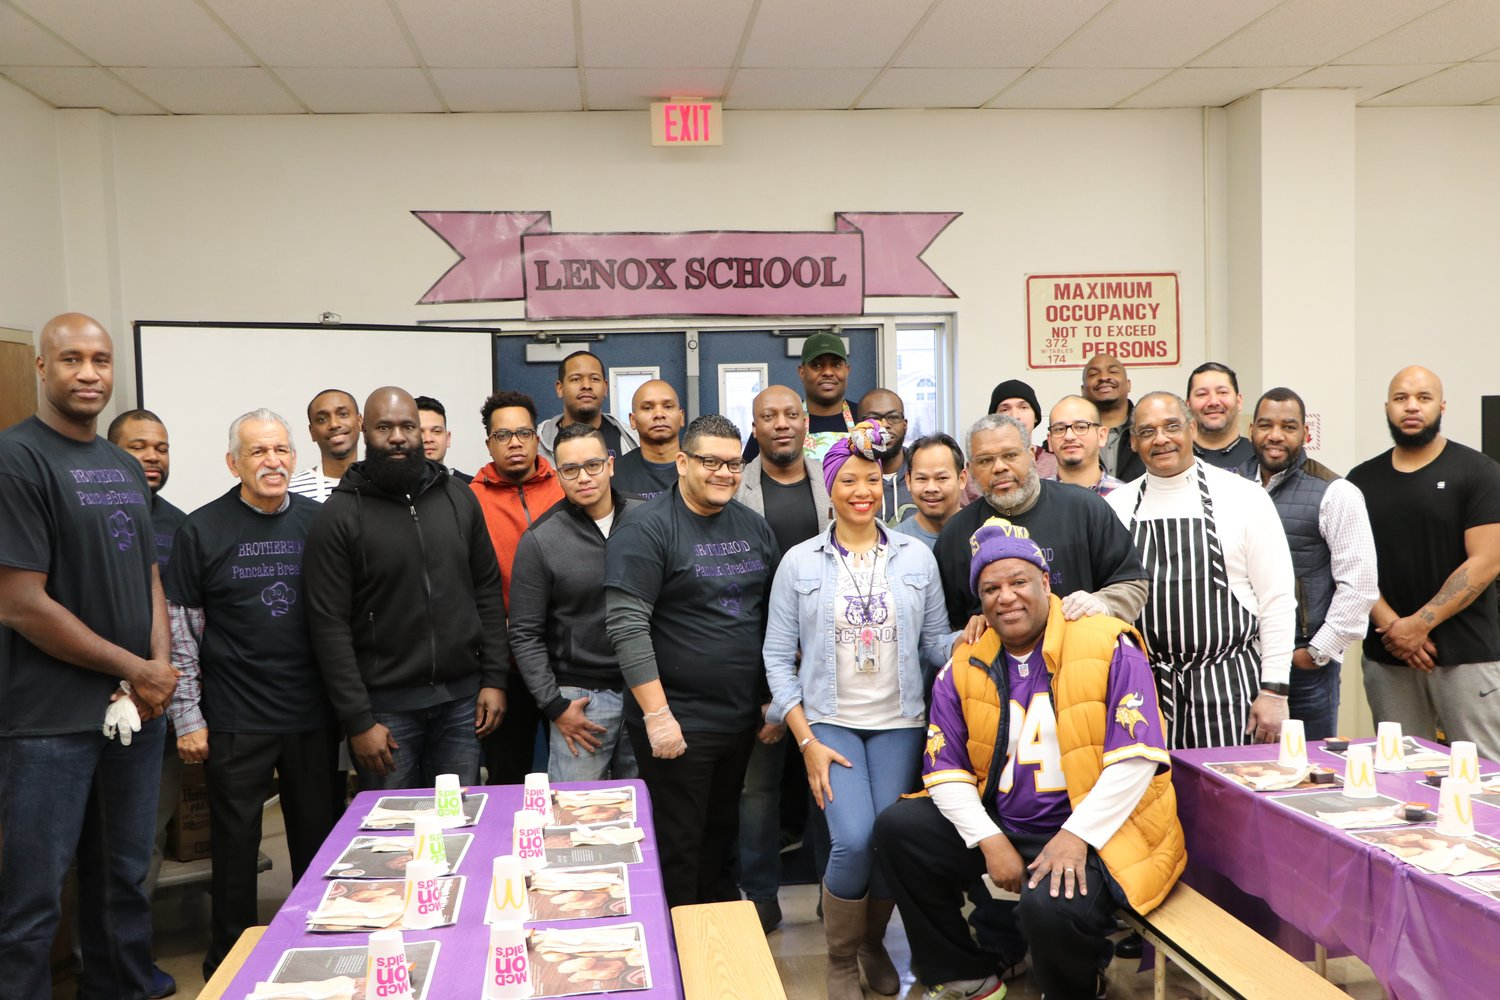 Lenox Principal Asheena Baez, center, with the fathers, uncles and grandfathers of Lenox students and alumni.